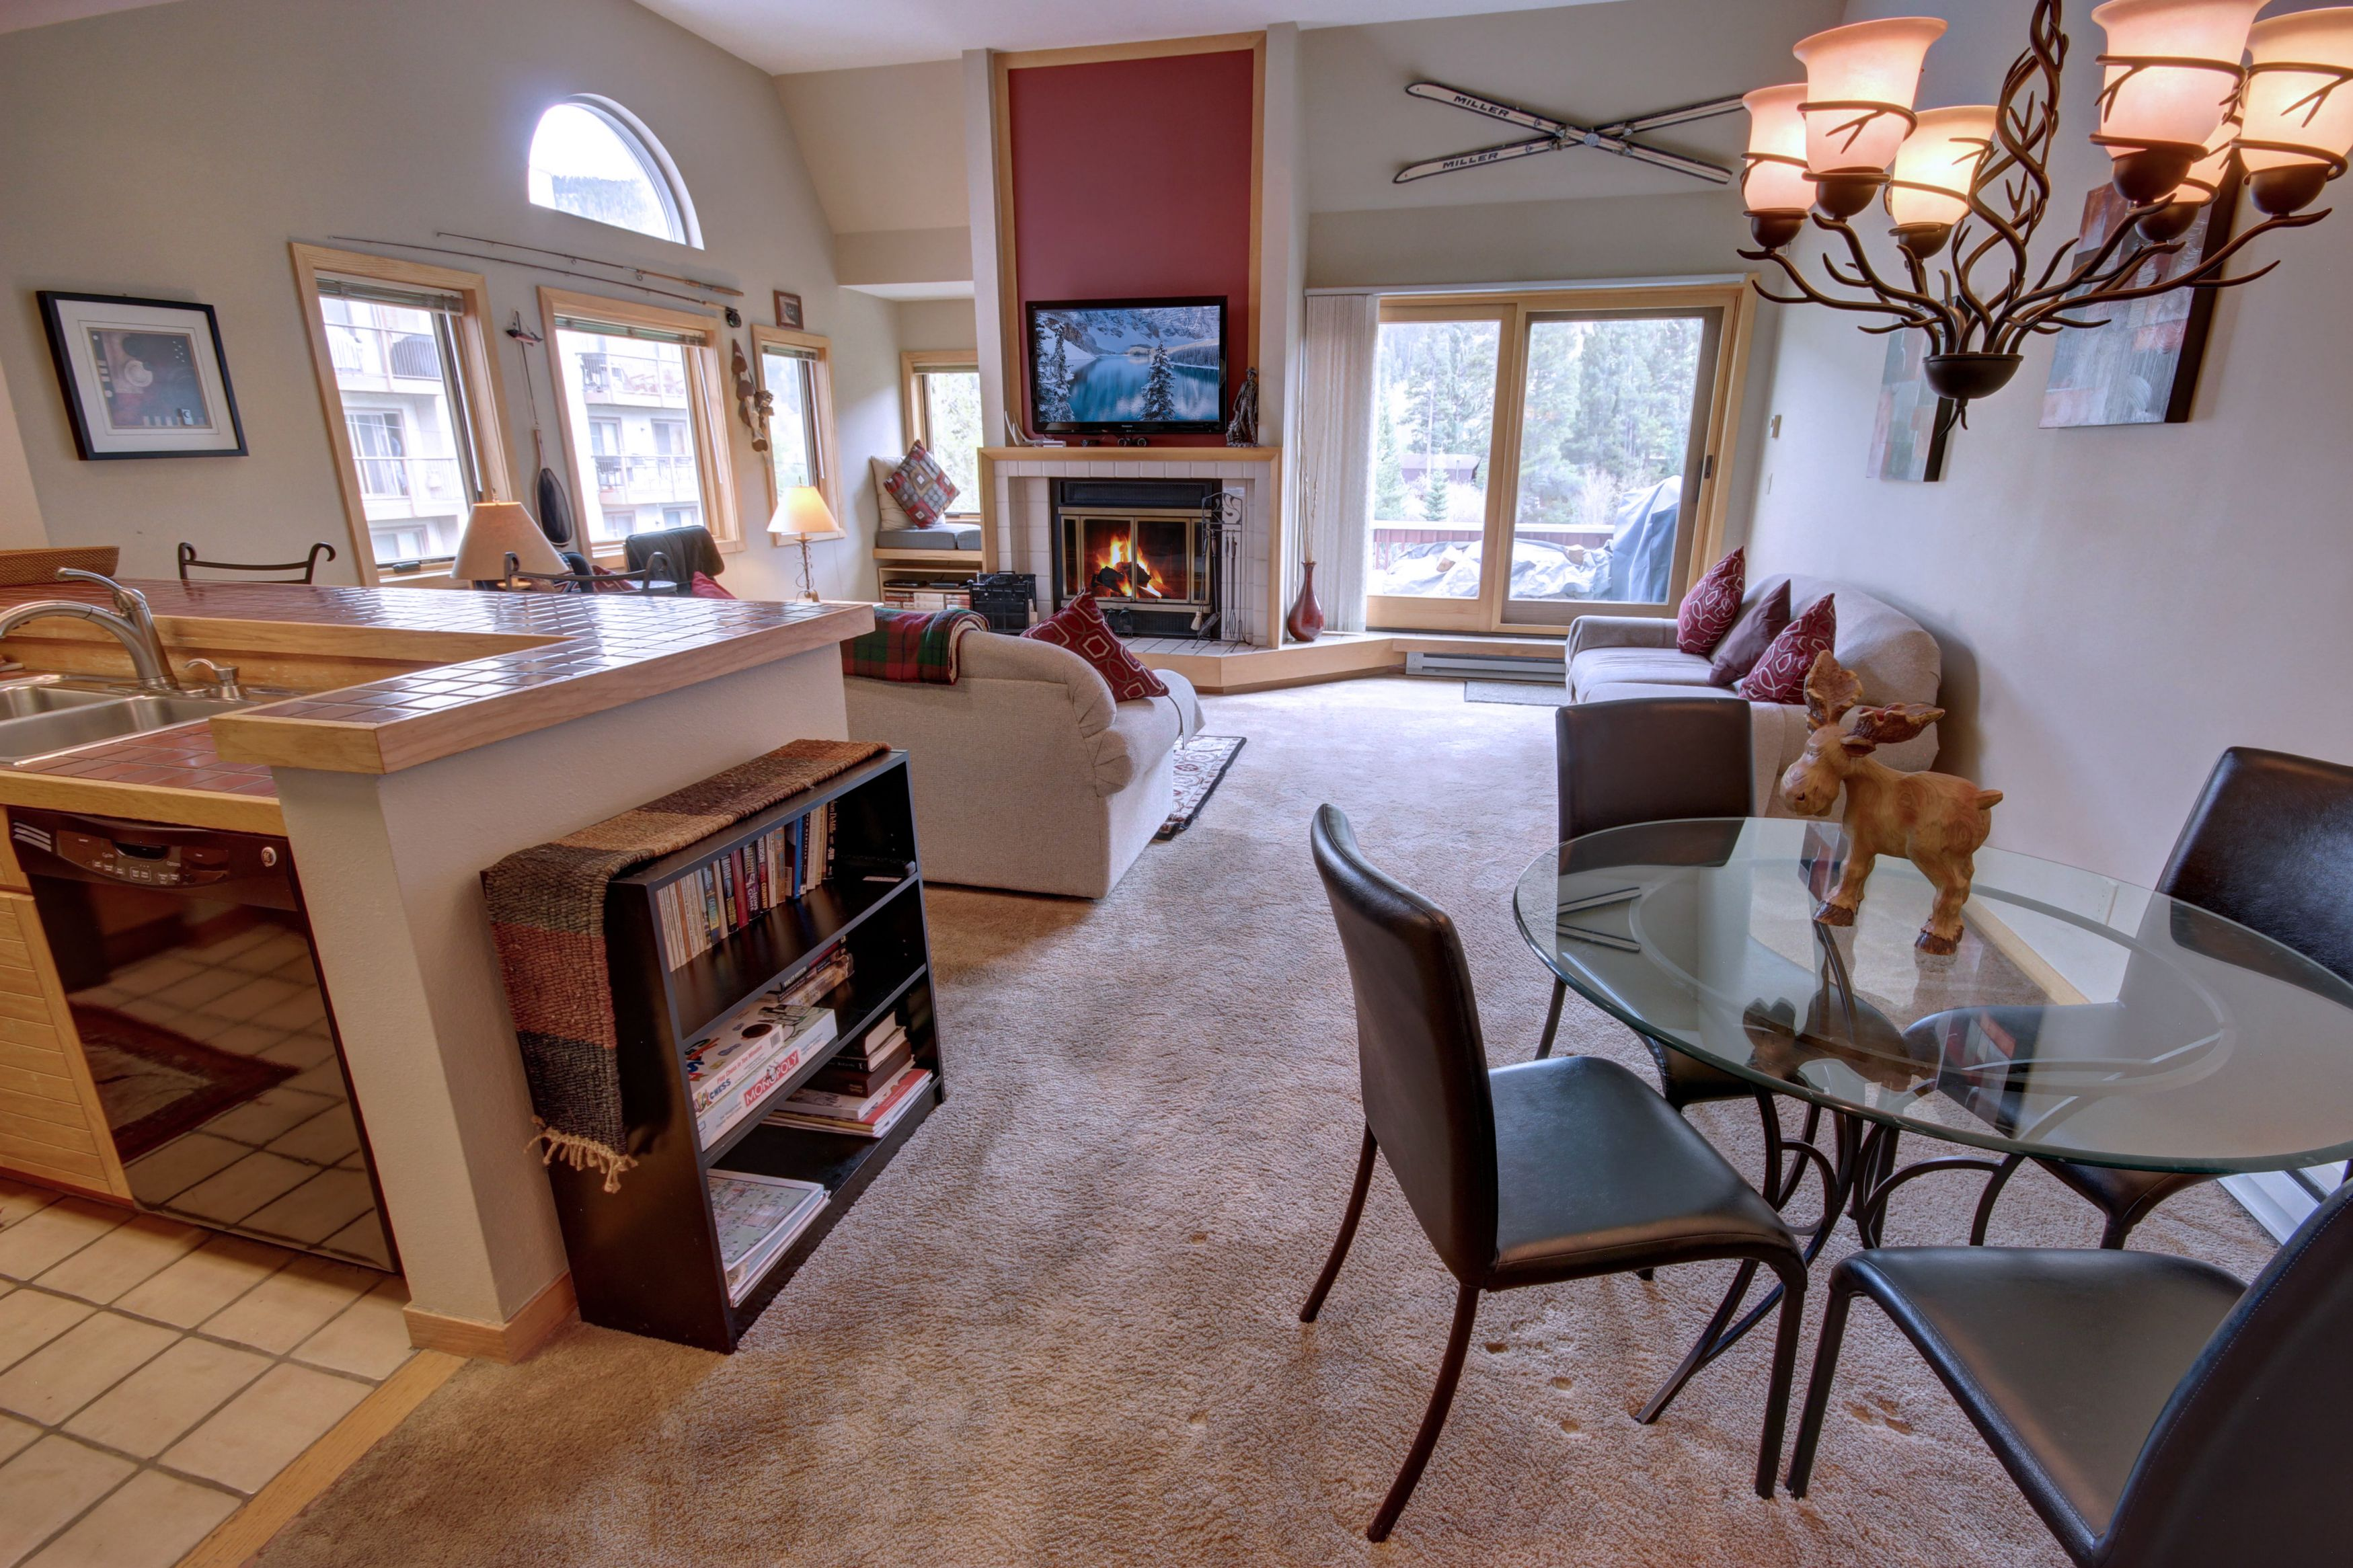 Kitchen, dining area and living room